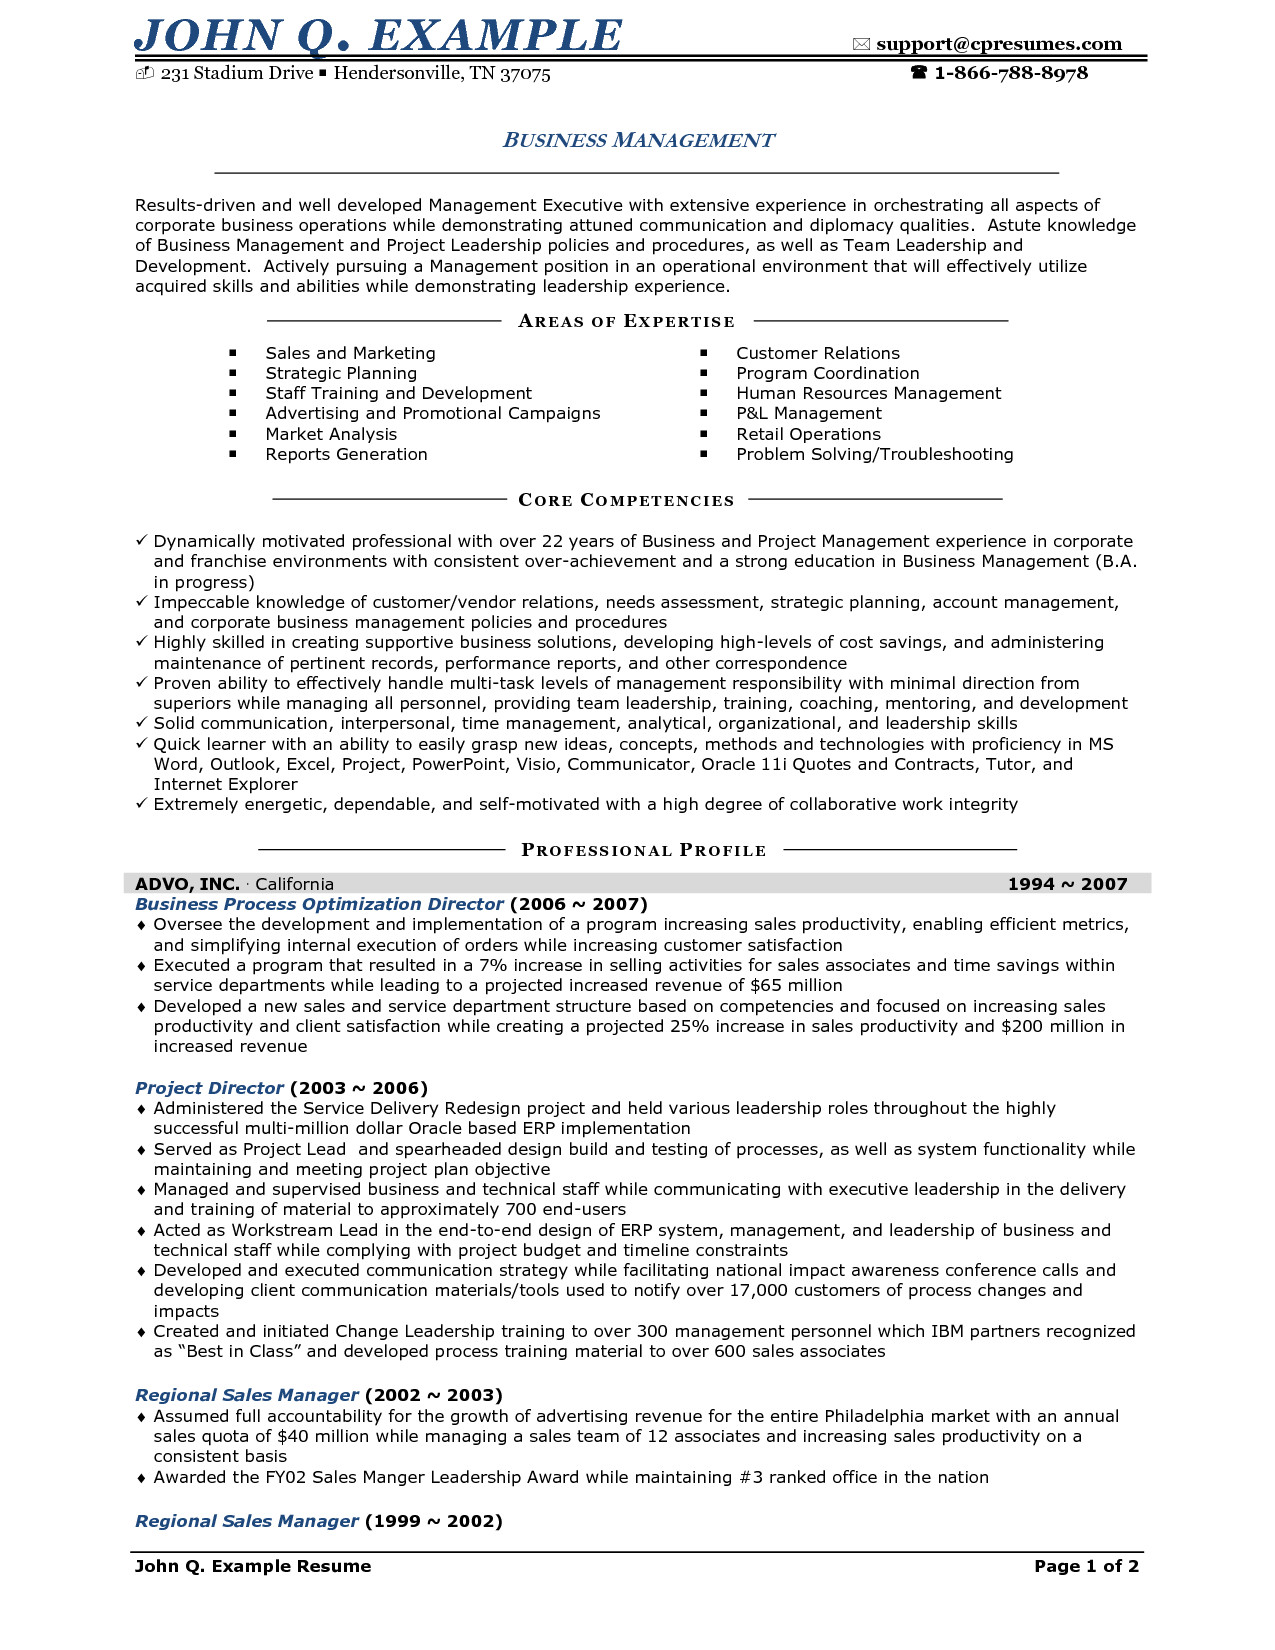 Small Business Owner Resume Resume for Owner Small Business Resume Ideas